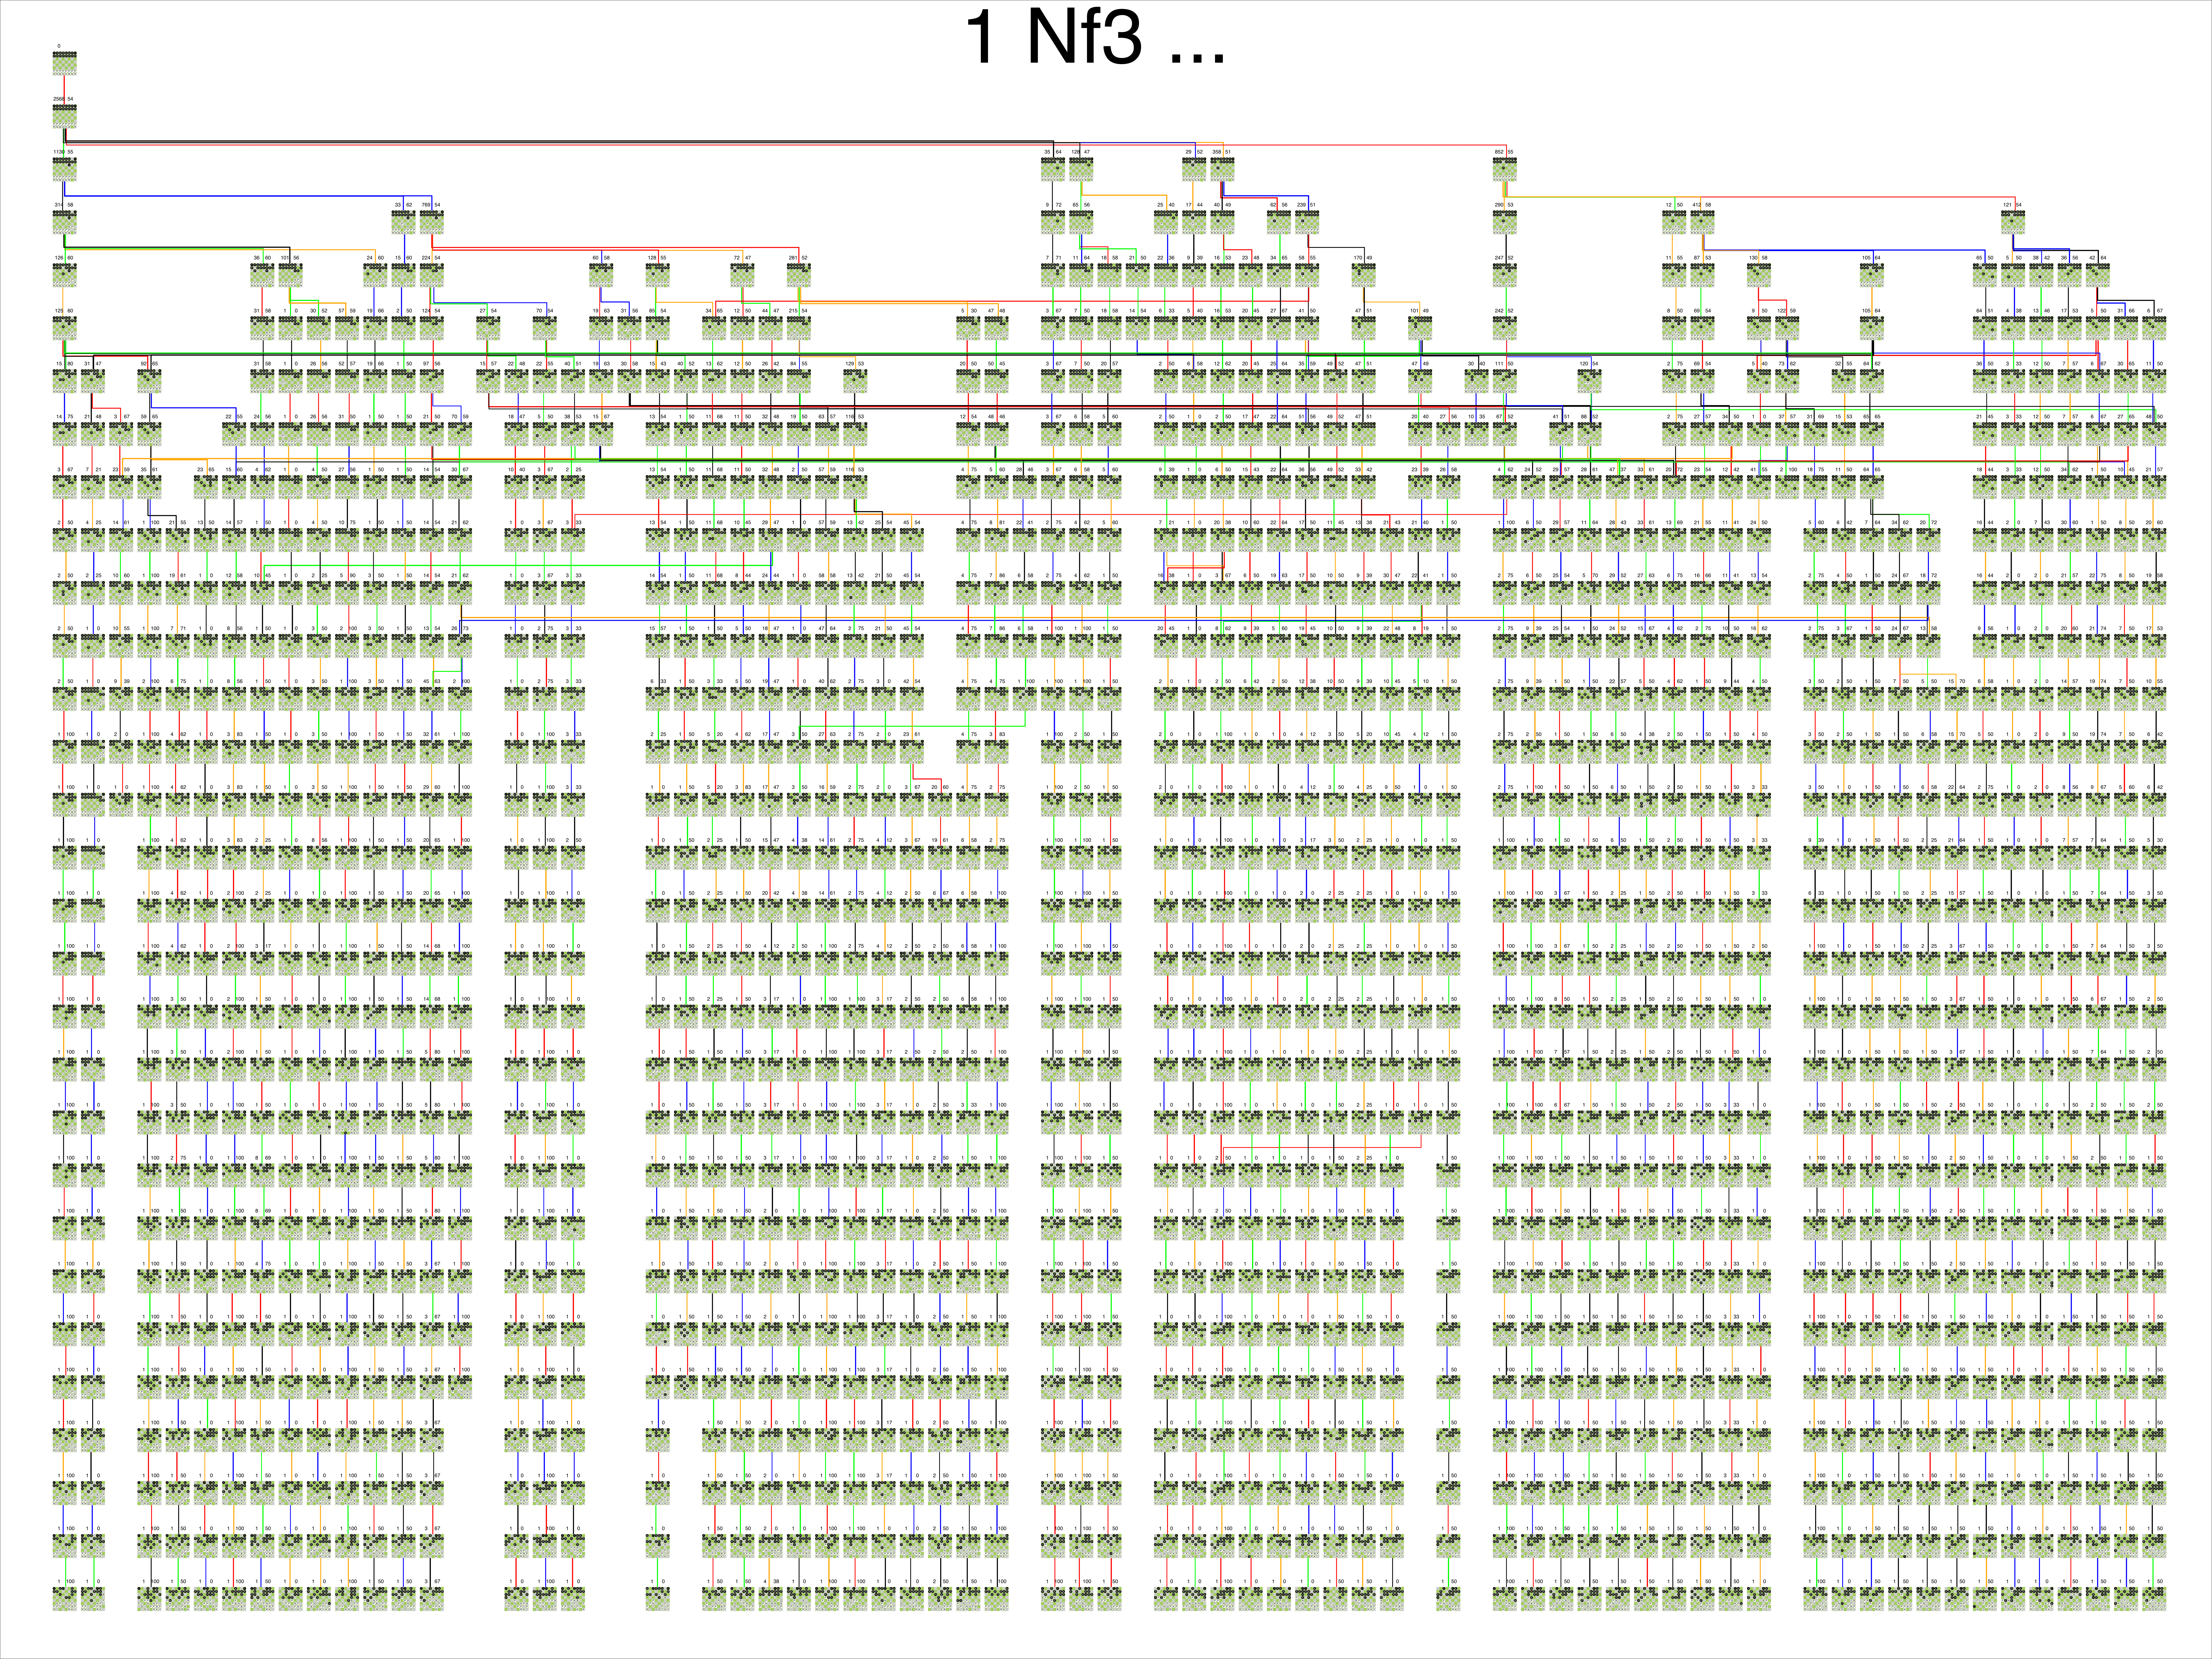 Chess Opening Tree for games starting with 1 Nf3 [OC